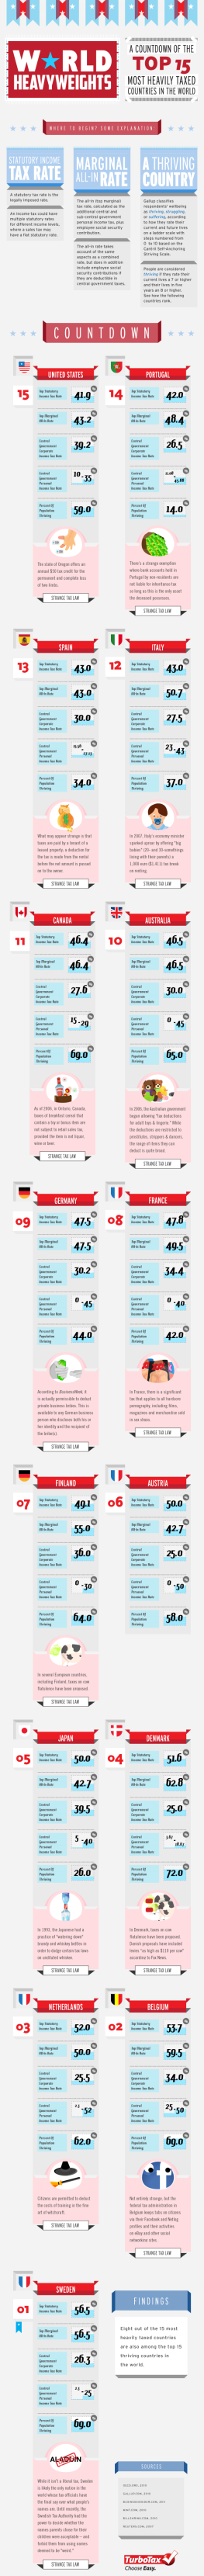 World Heavyweights: A Countdown Of The Top 15 Most Heavily Taxed Countries In The World